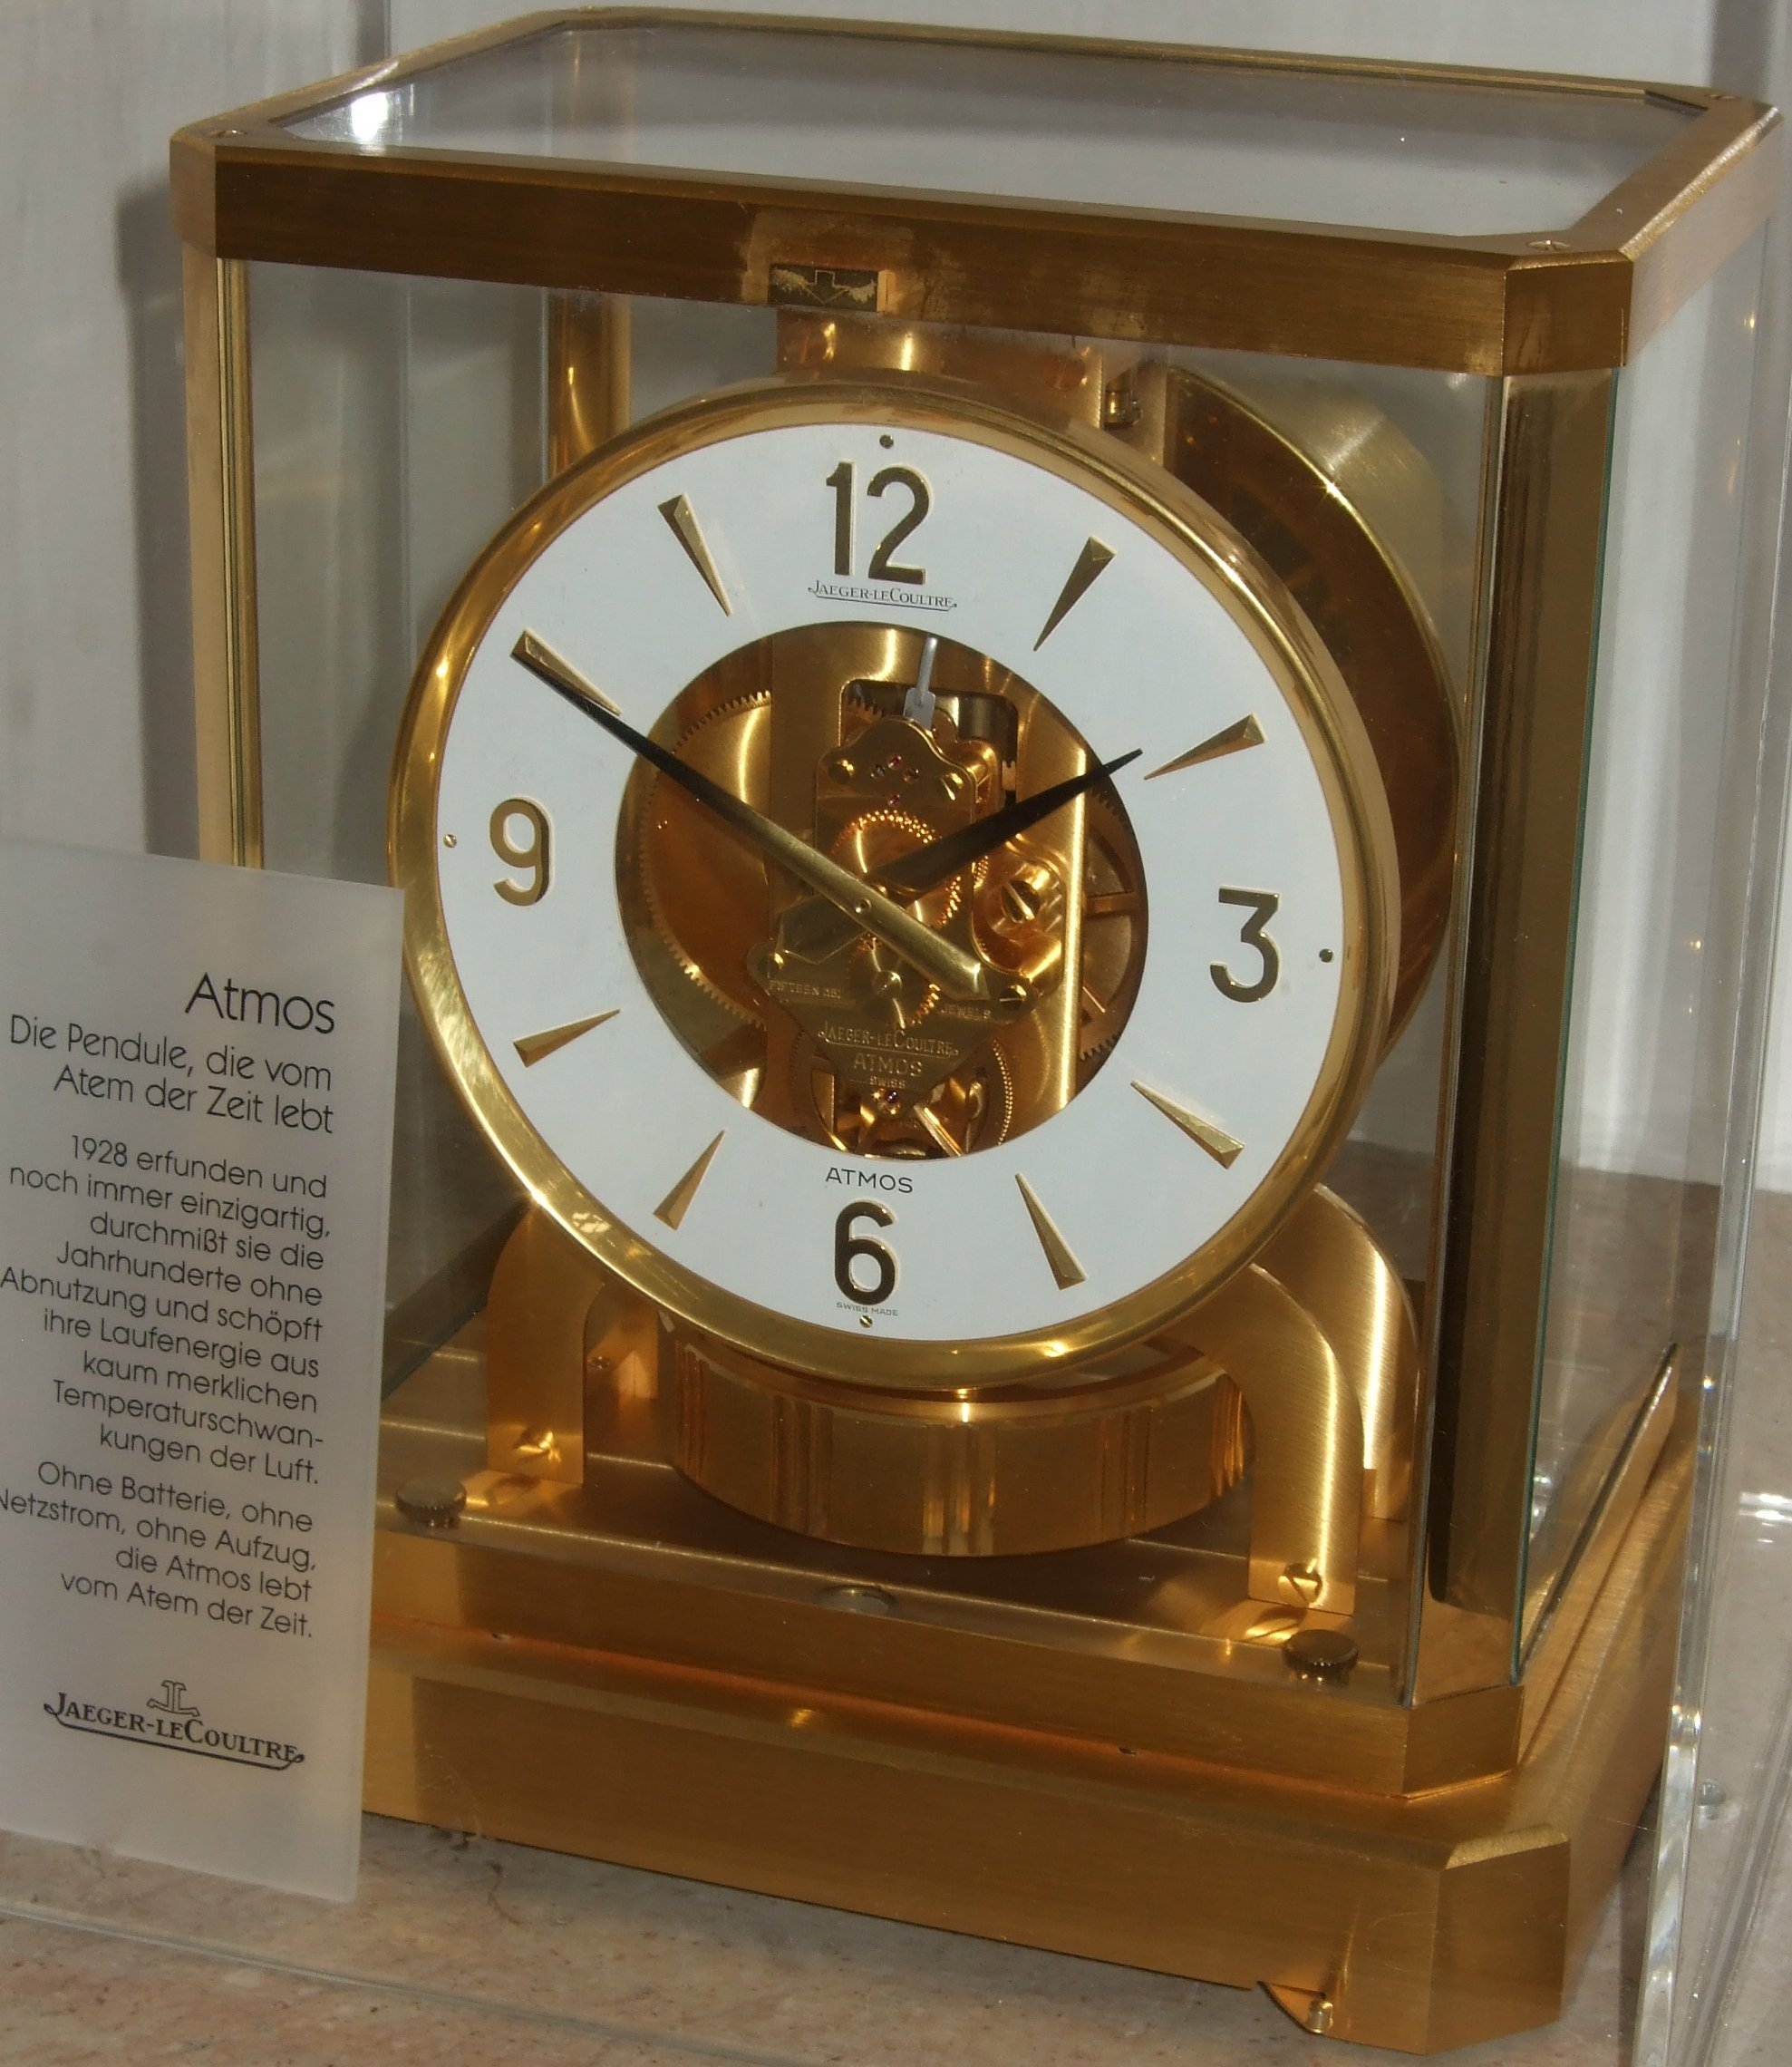 lecoultre atmos clock instructions